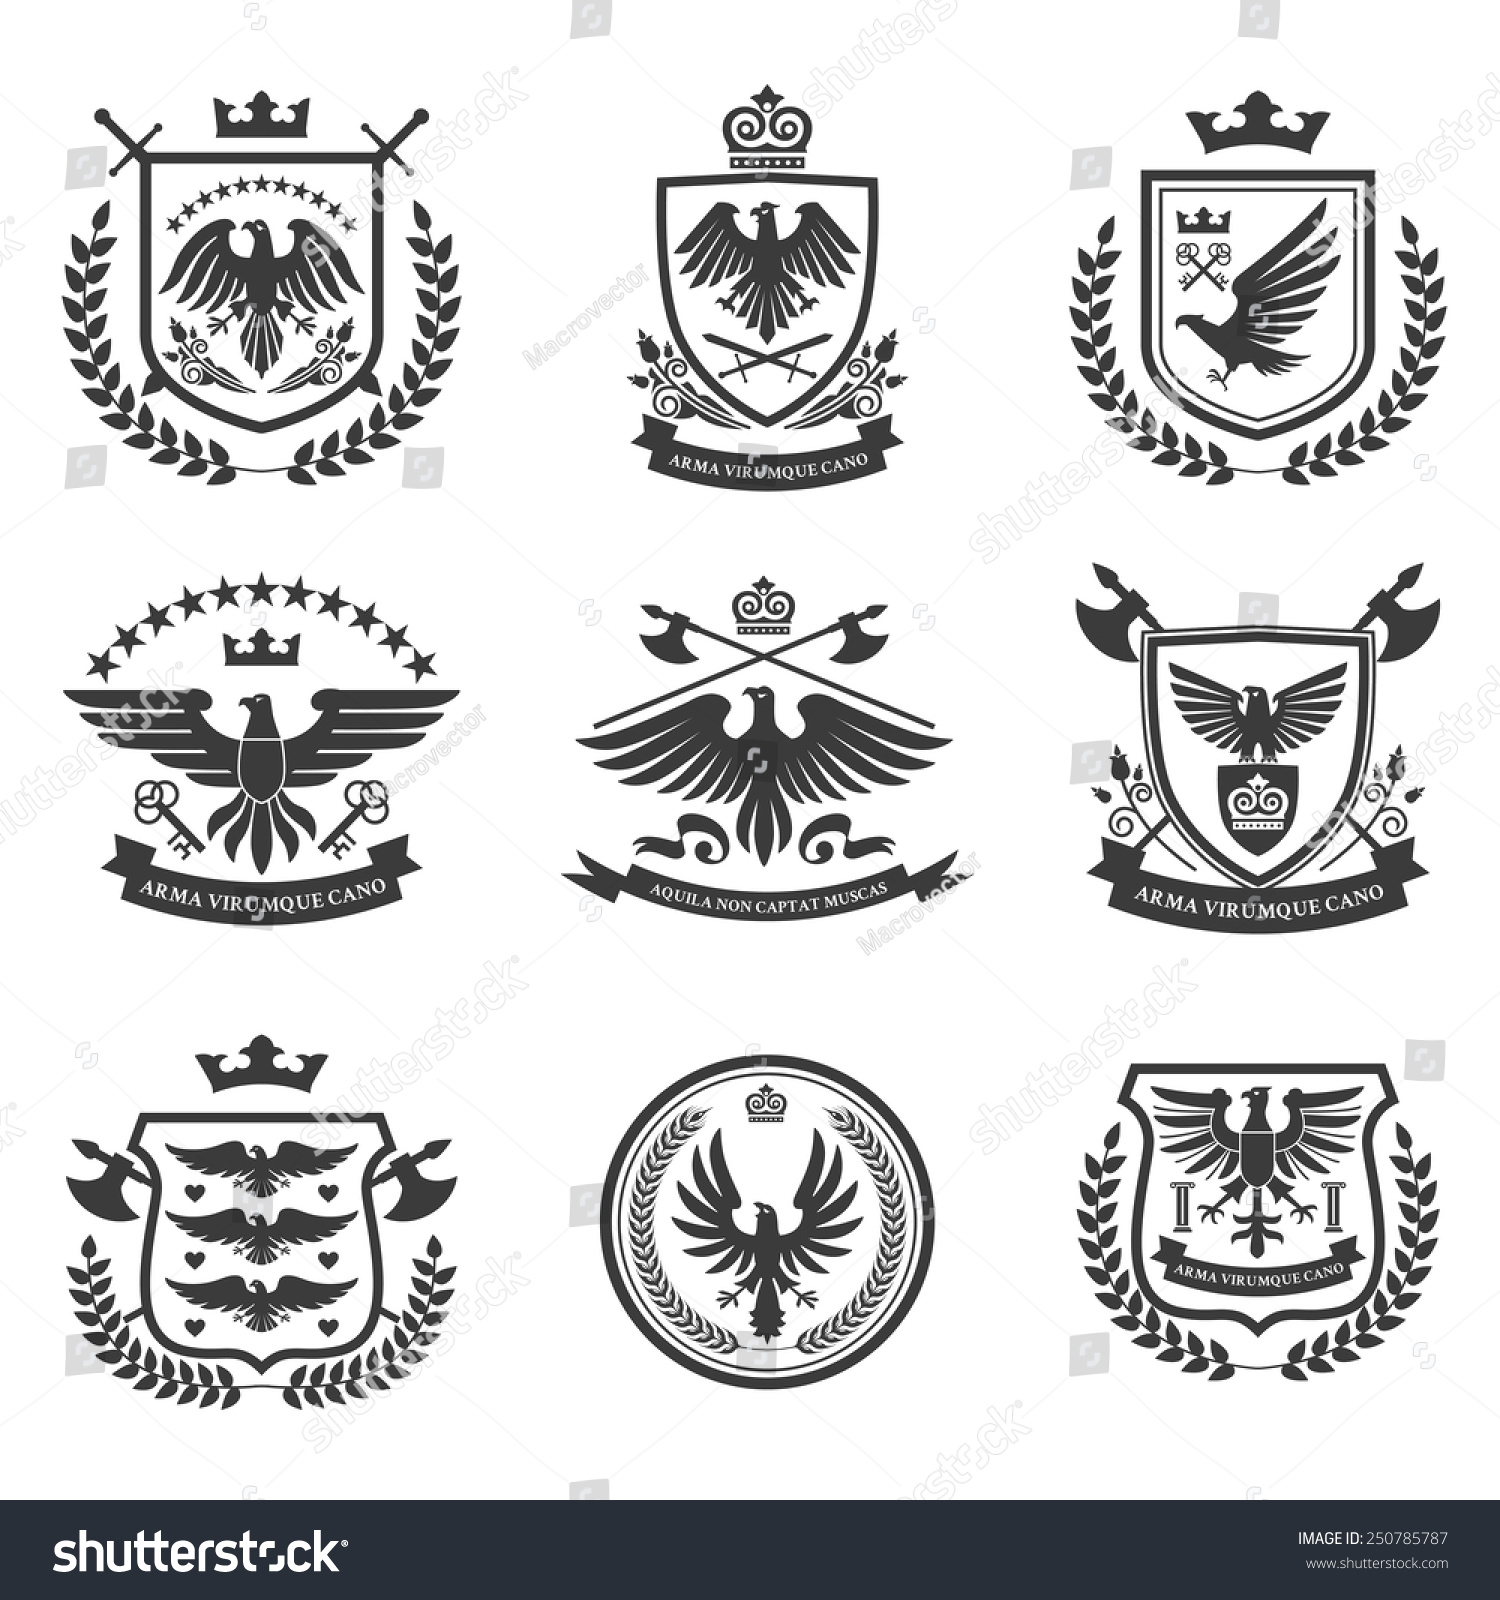 heraldry coat of arms emblems shield icons set with spread wings black ...